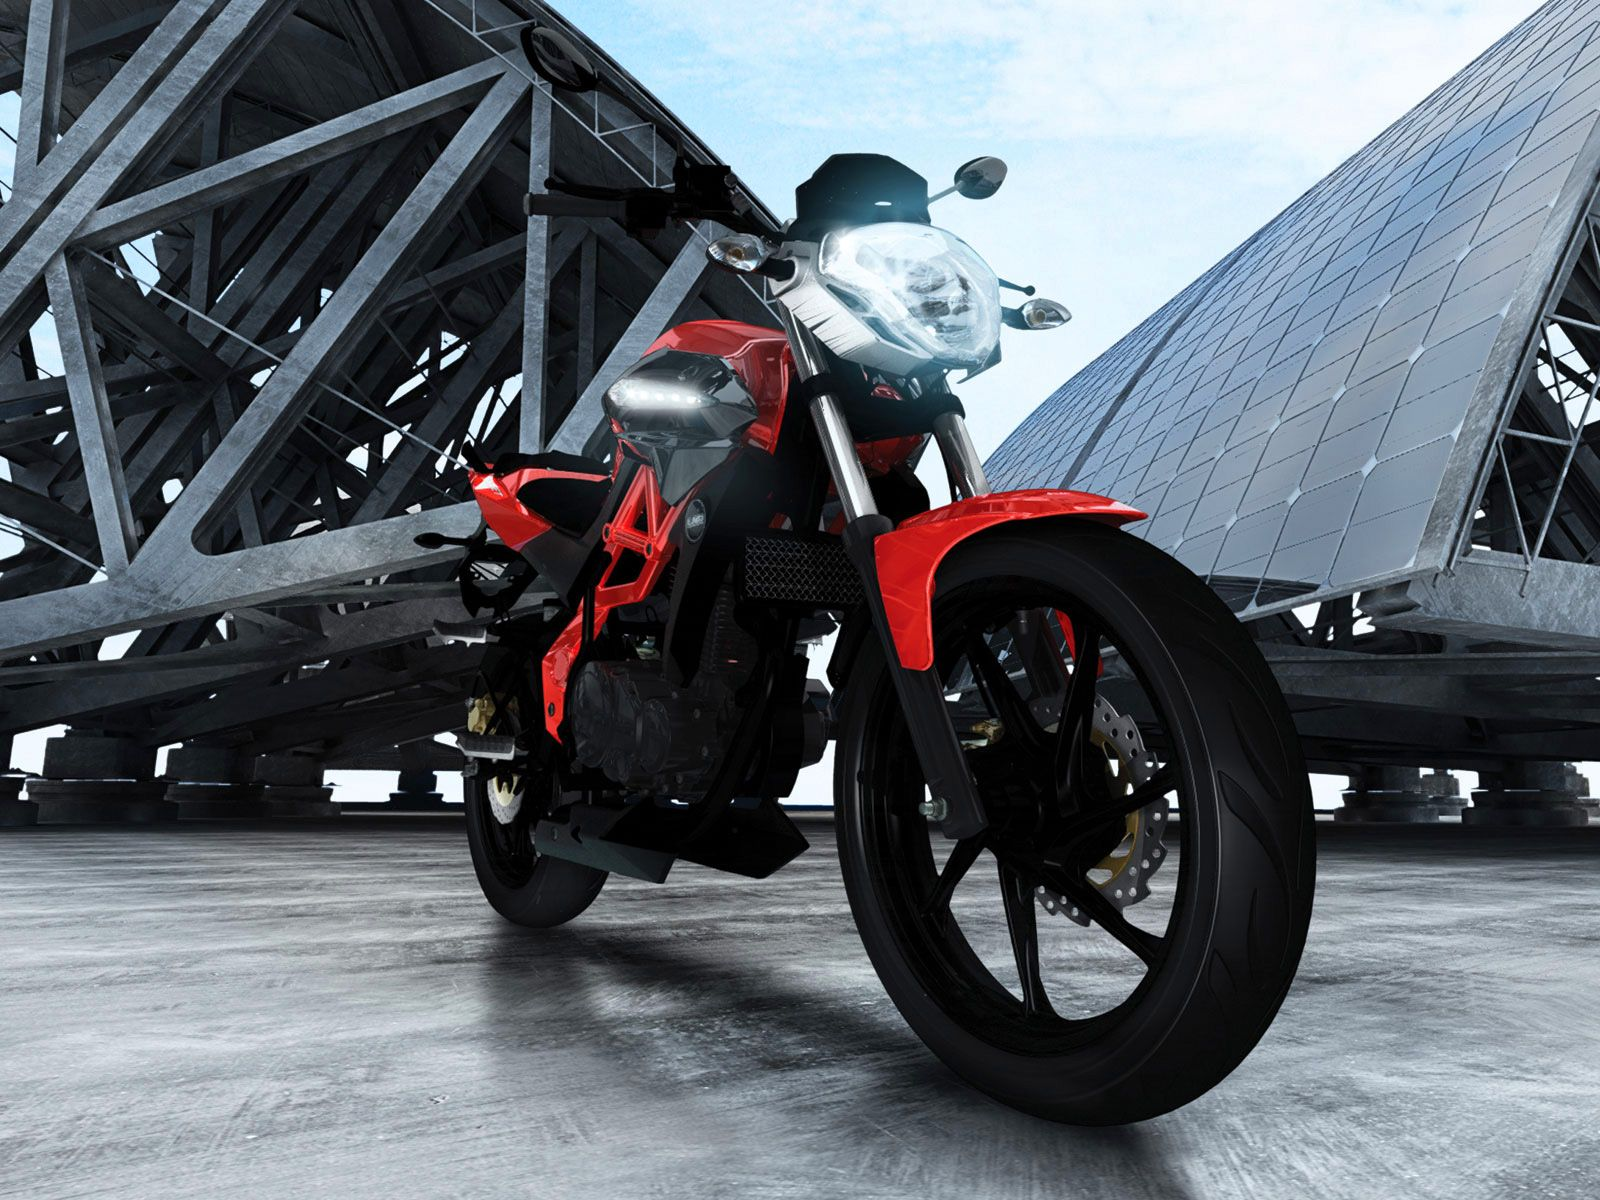 19 Best Xtreet Um Images On Pinterest Motorcycles Motorcycle